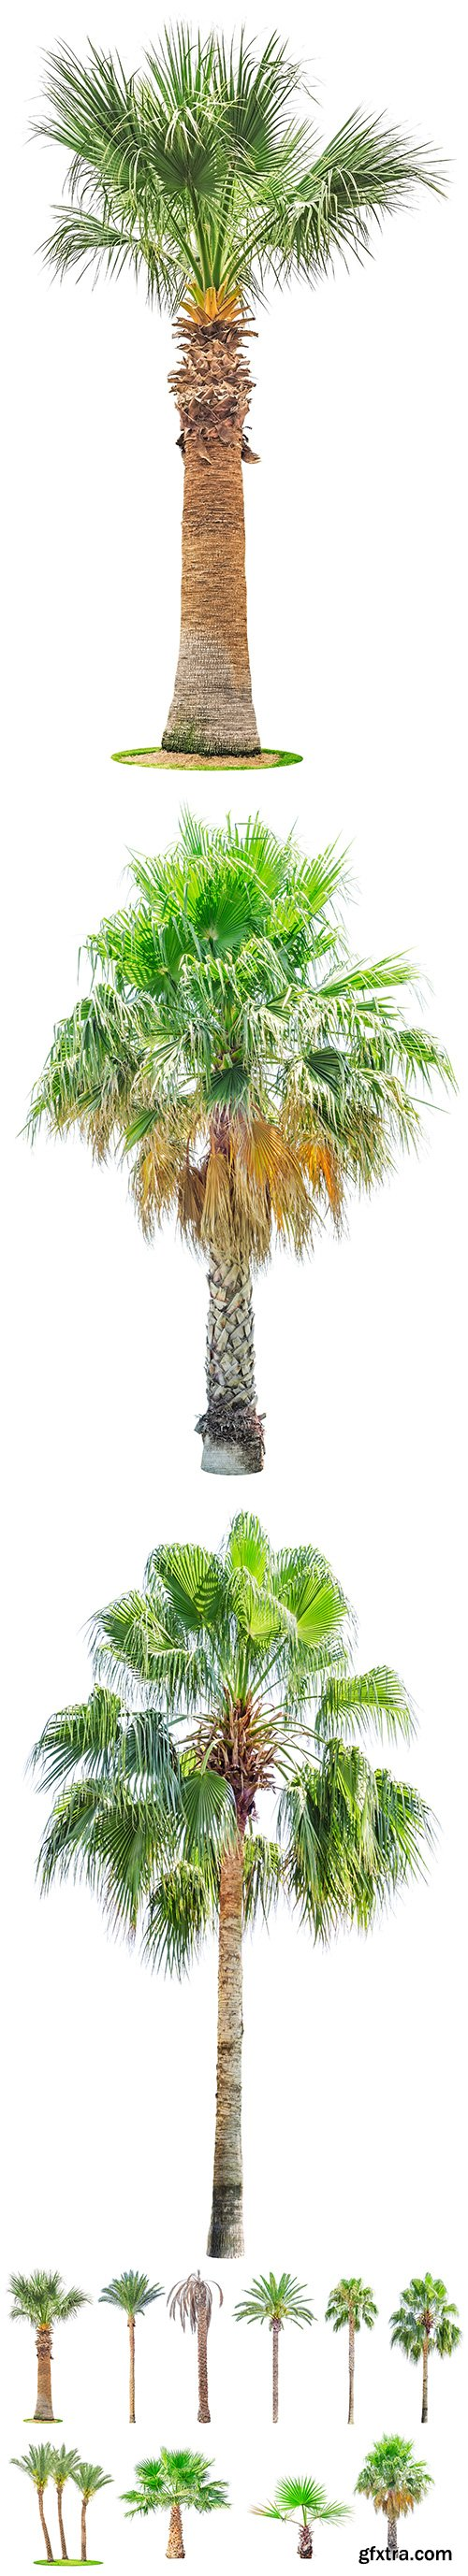 Palm Tree Isolated - 7xJPGs